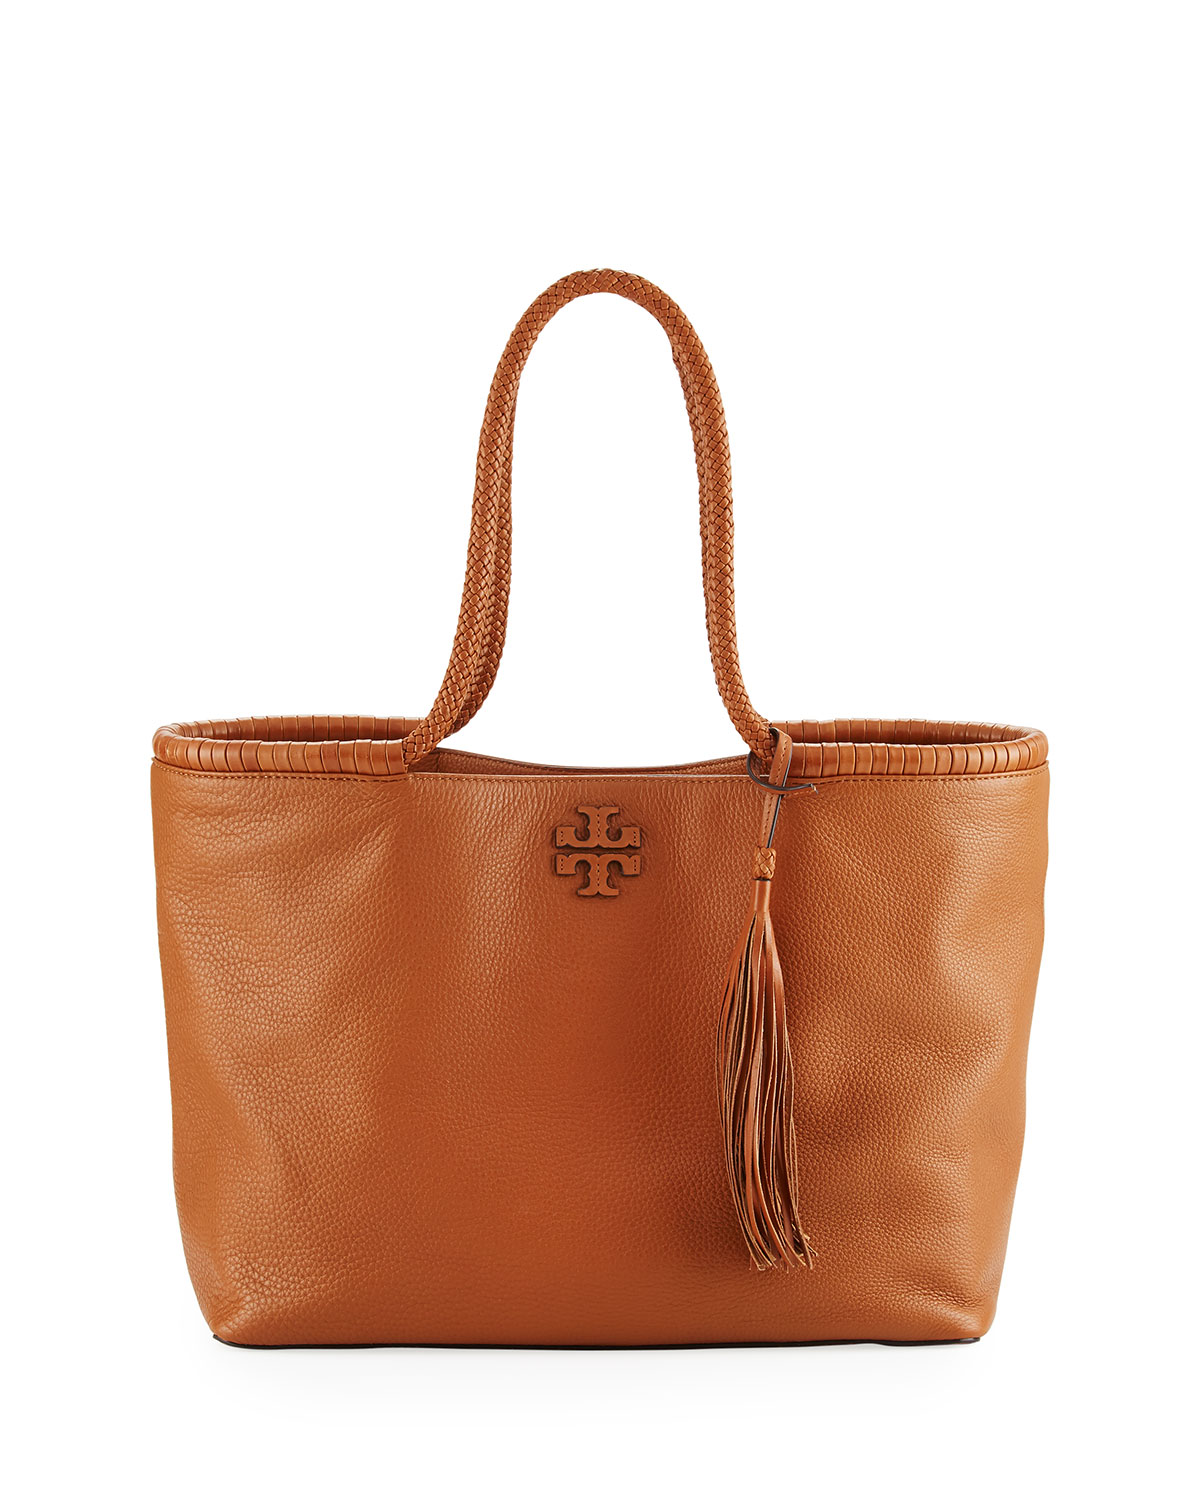 d674c7e5c2a5 Tory Burch Taylor Braided-Handle Tote Bag